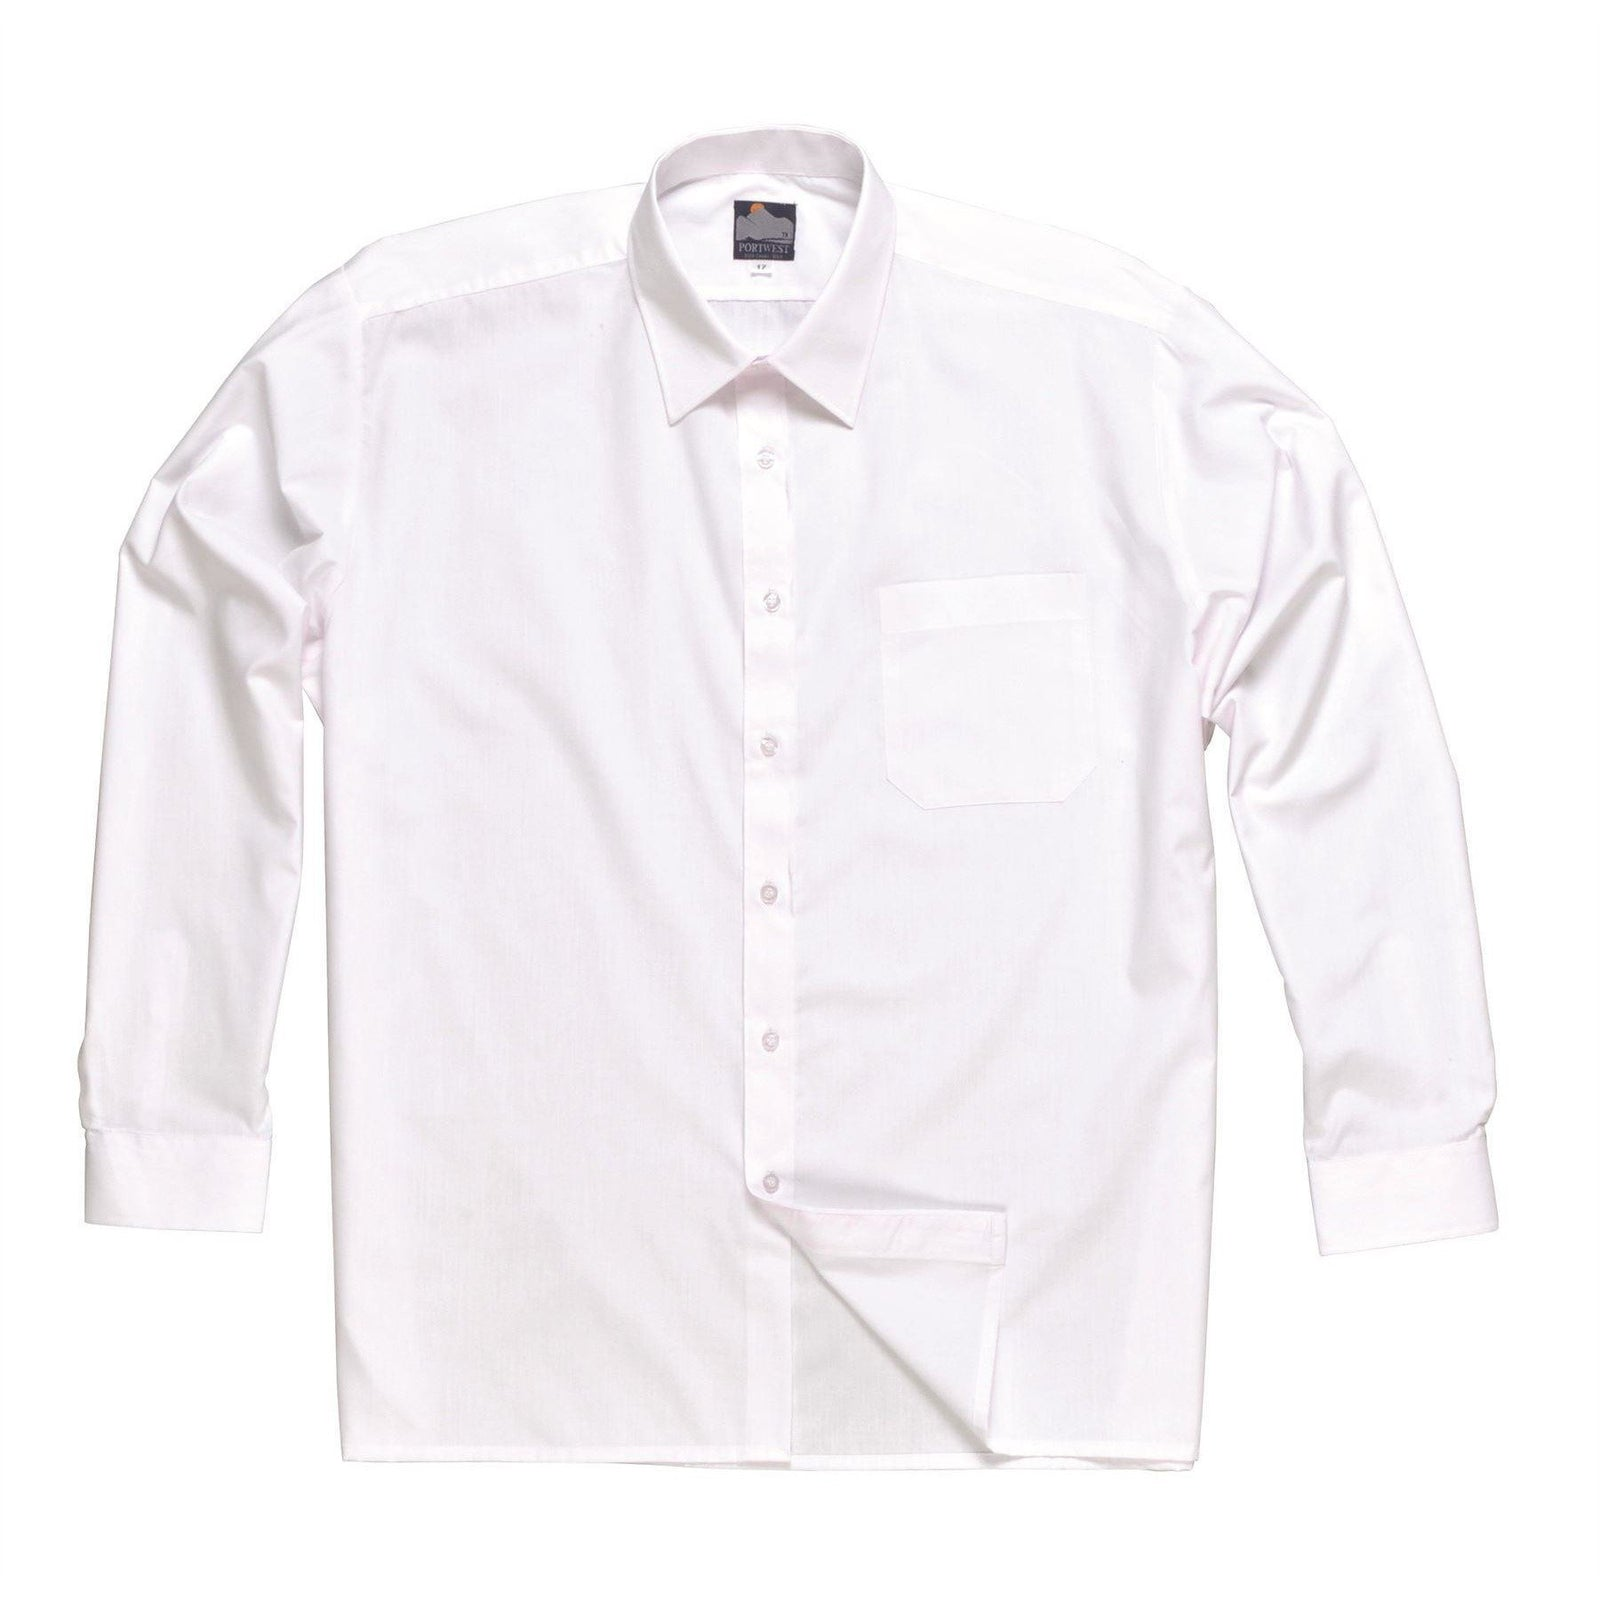 Portwest S103 Classic Shirt S103 - reid outdoors